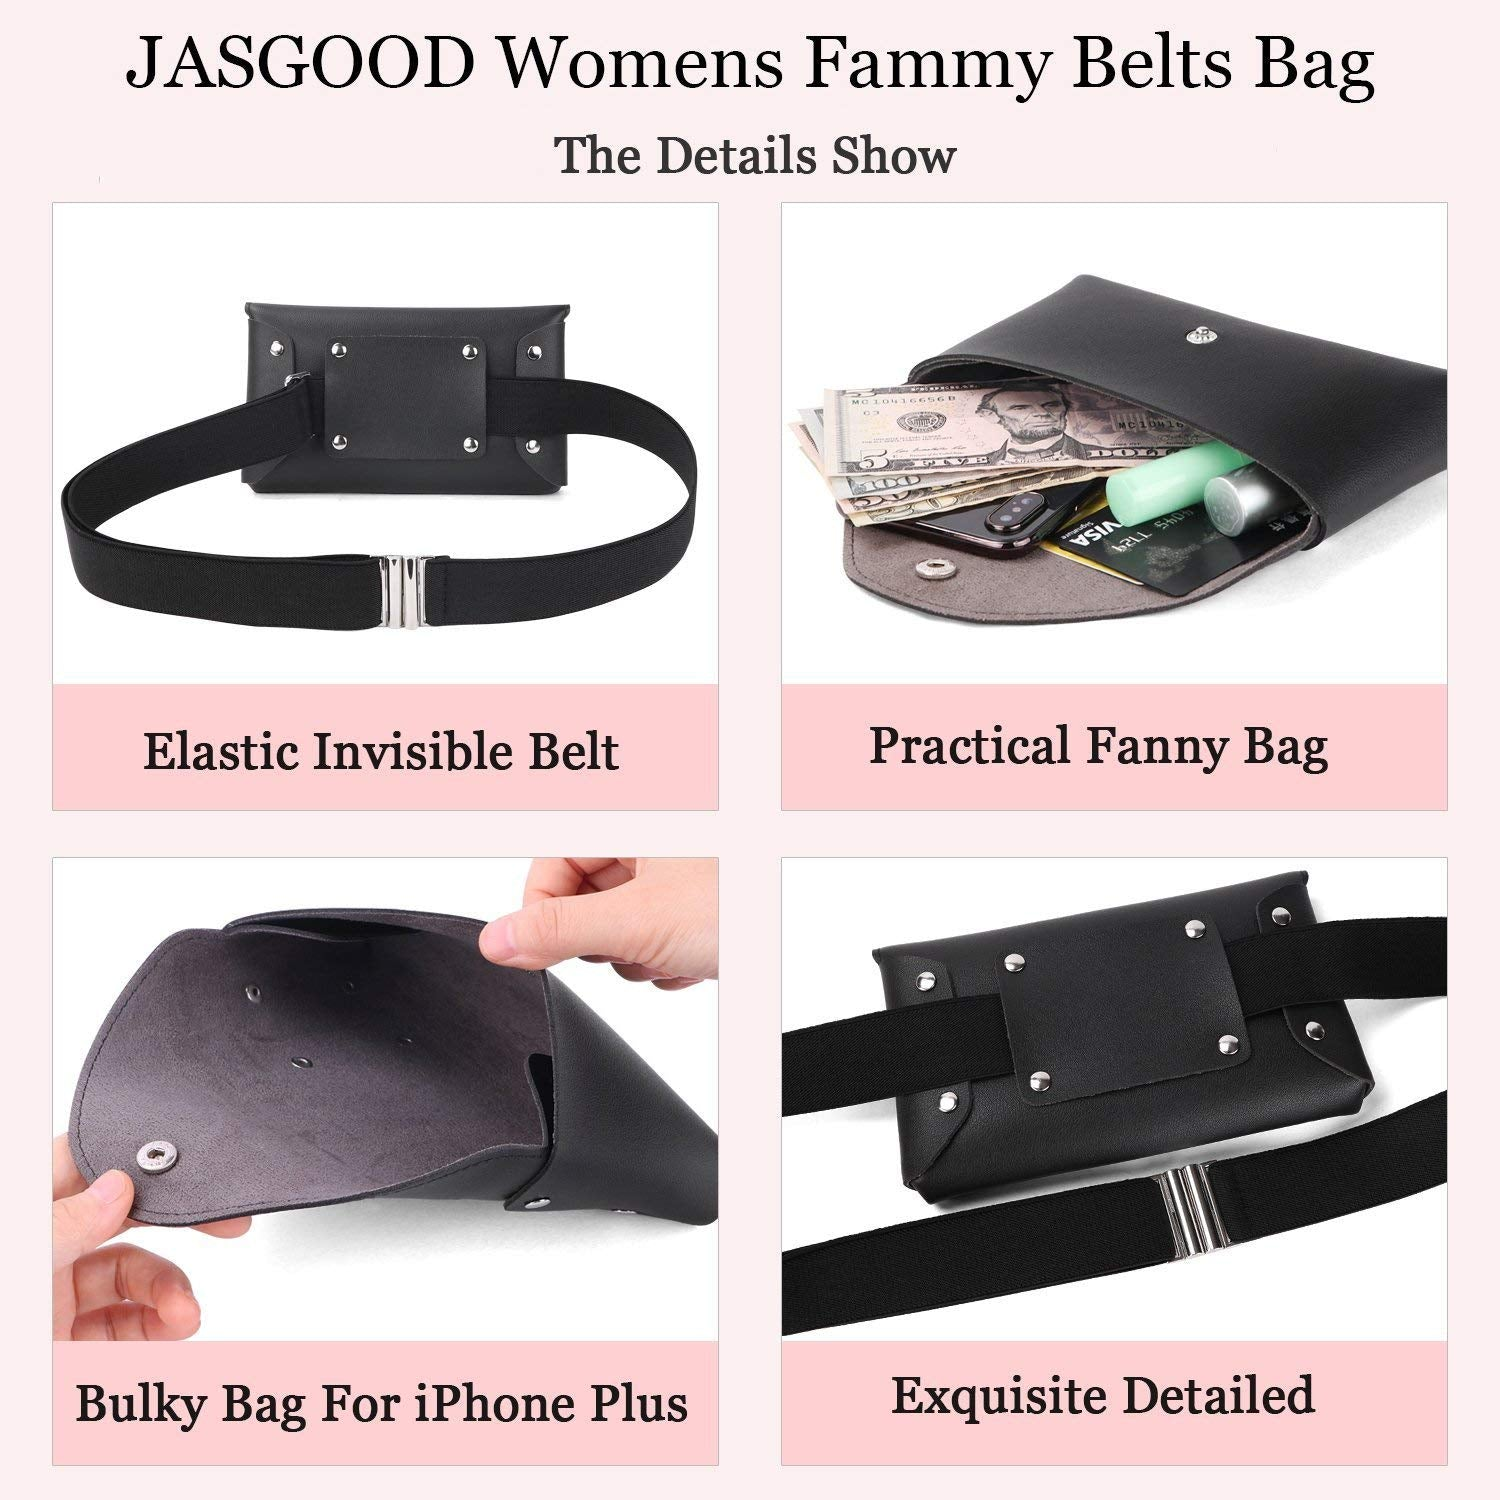 JASGOOD Women Leather Fanny Pack Waist Bag Travel Pouch//Purse with Removable Leather Belt Bag